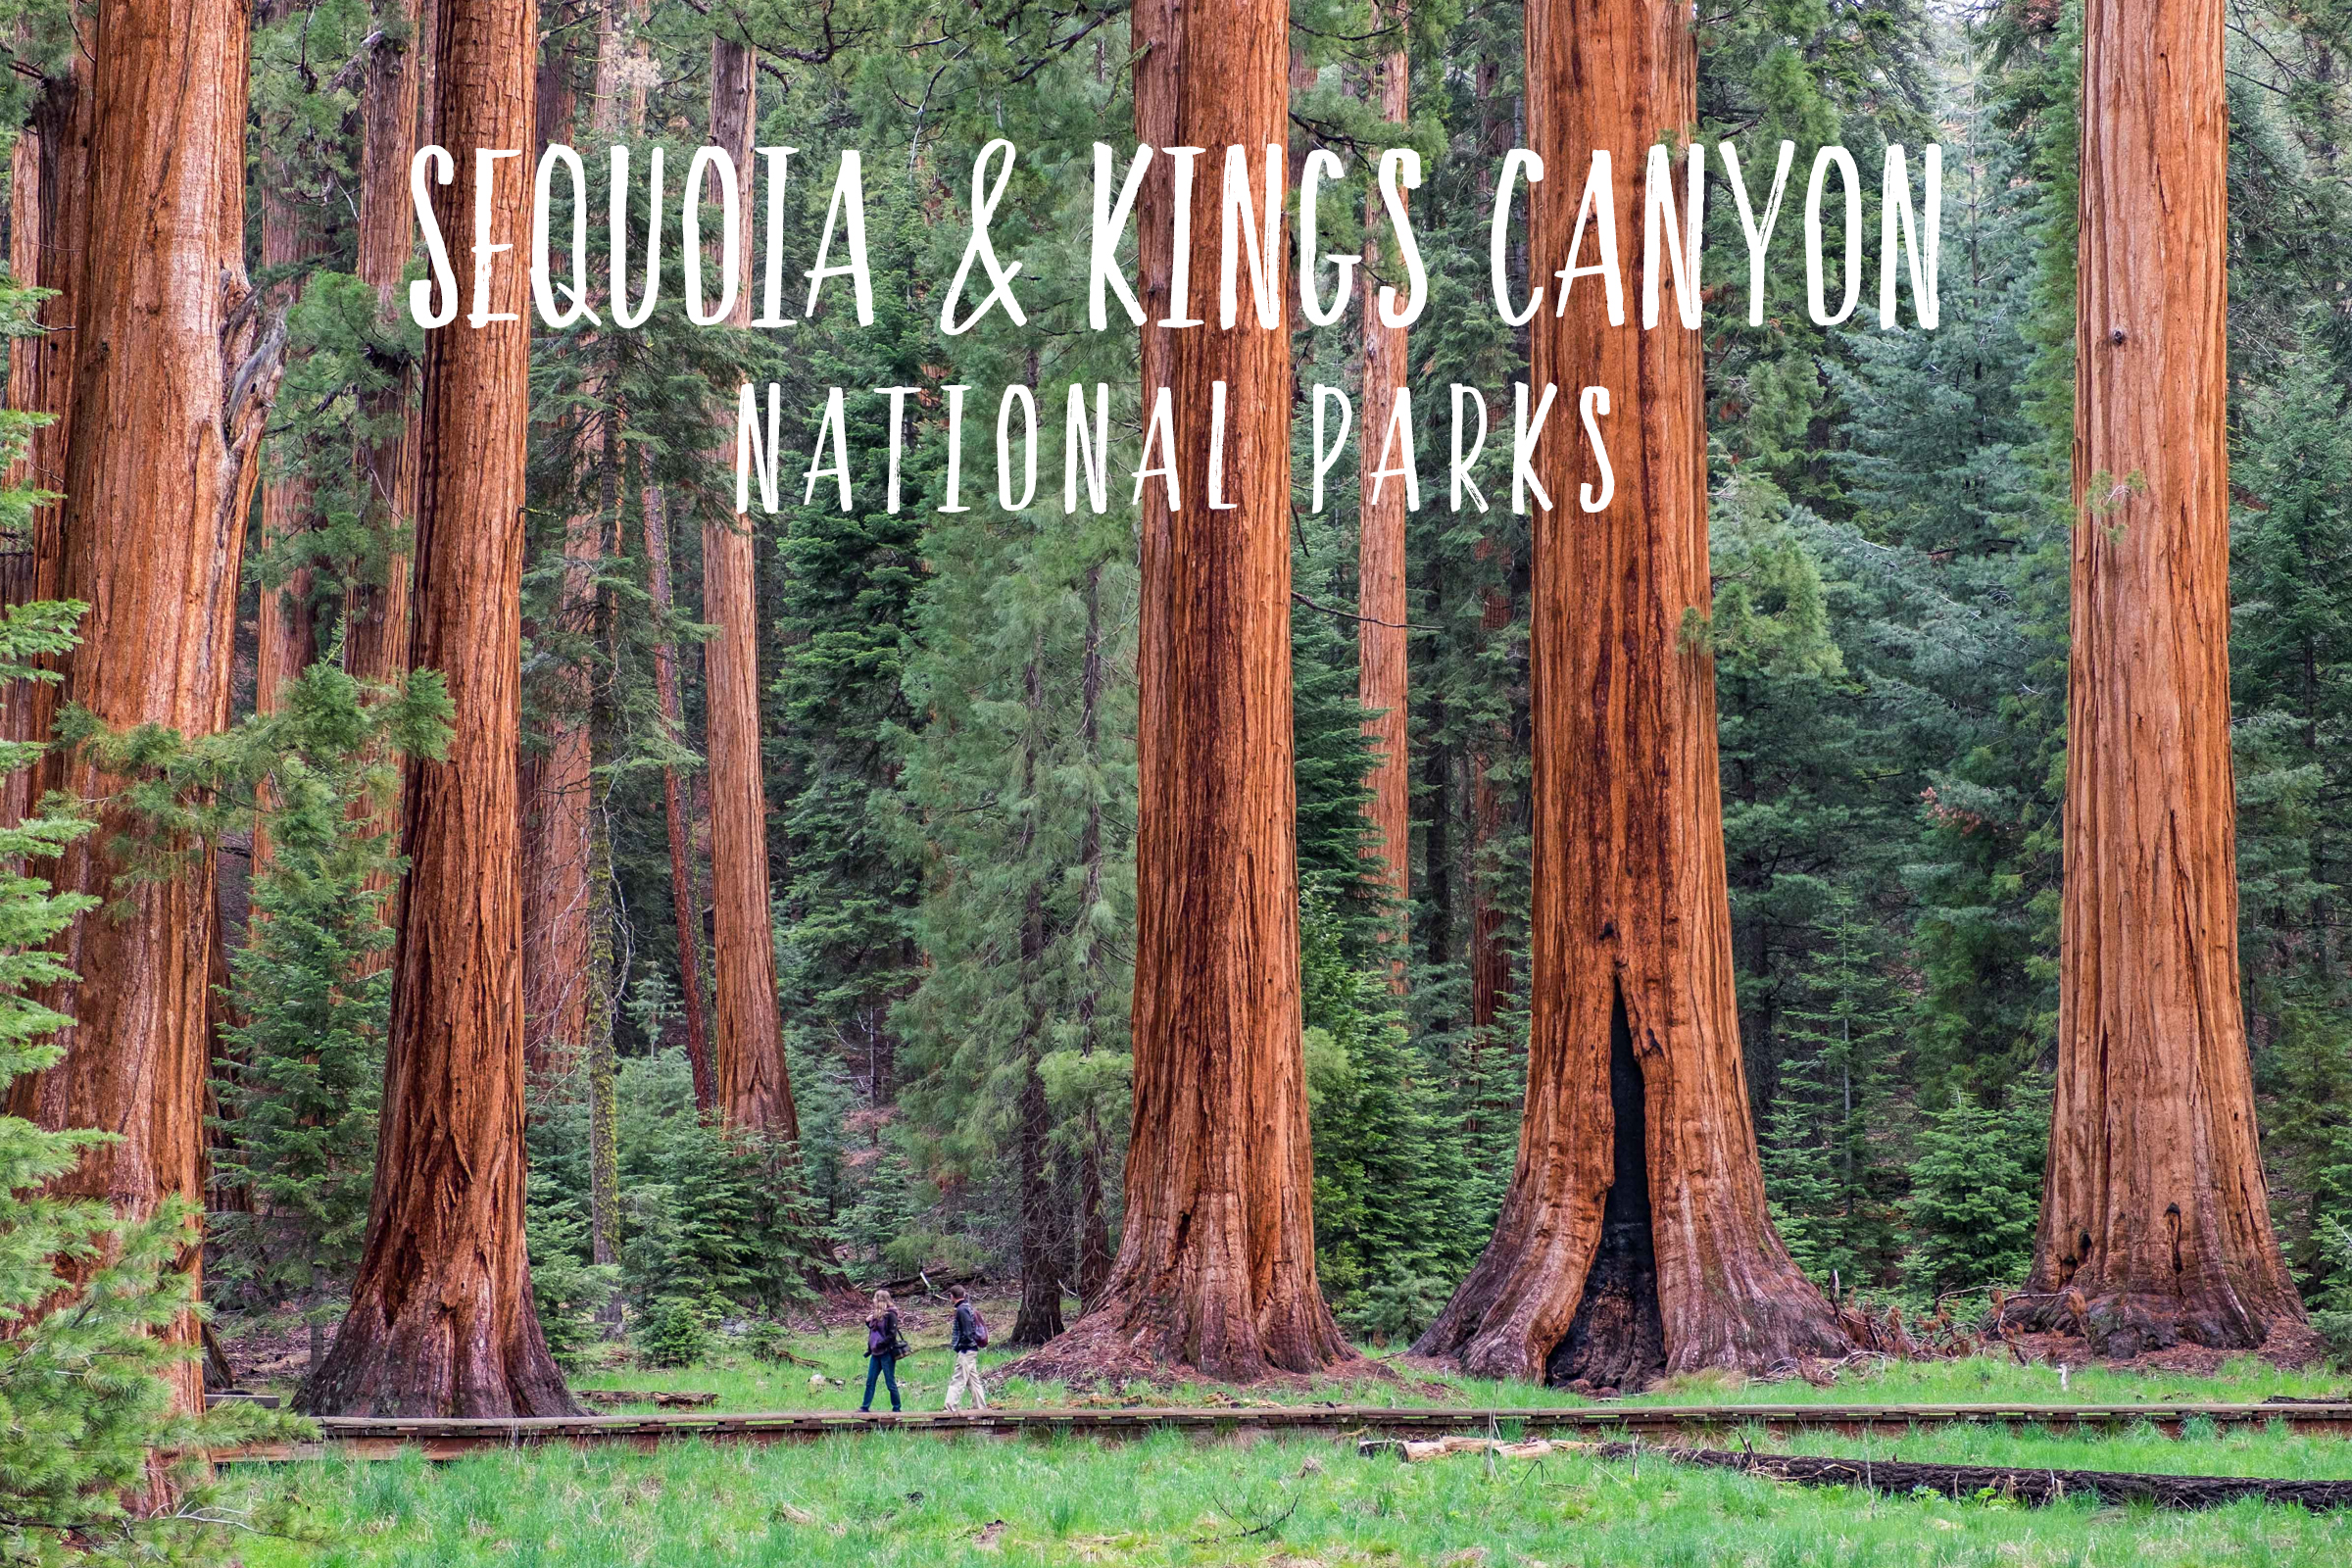 Parks 22&23/59: Sequoia & Kings Canyon National Park in California